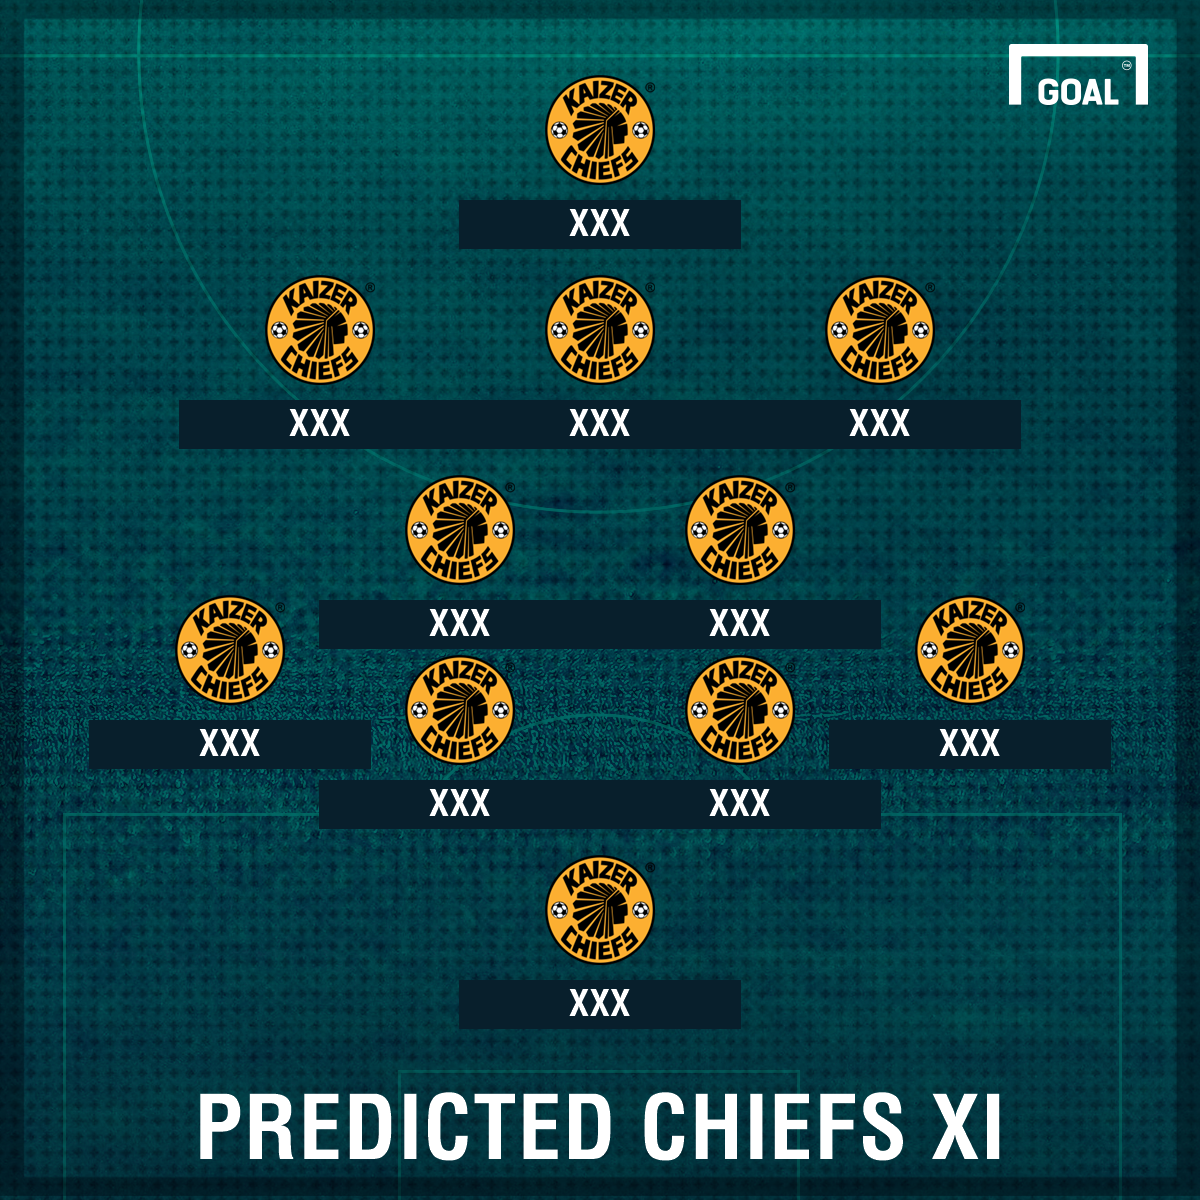 Predicted Chiefs XI